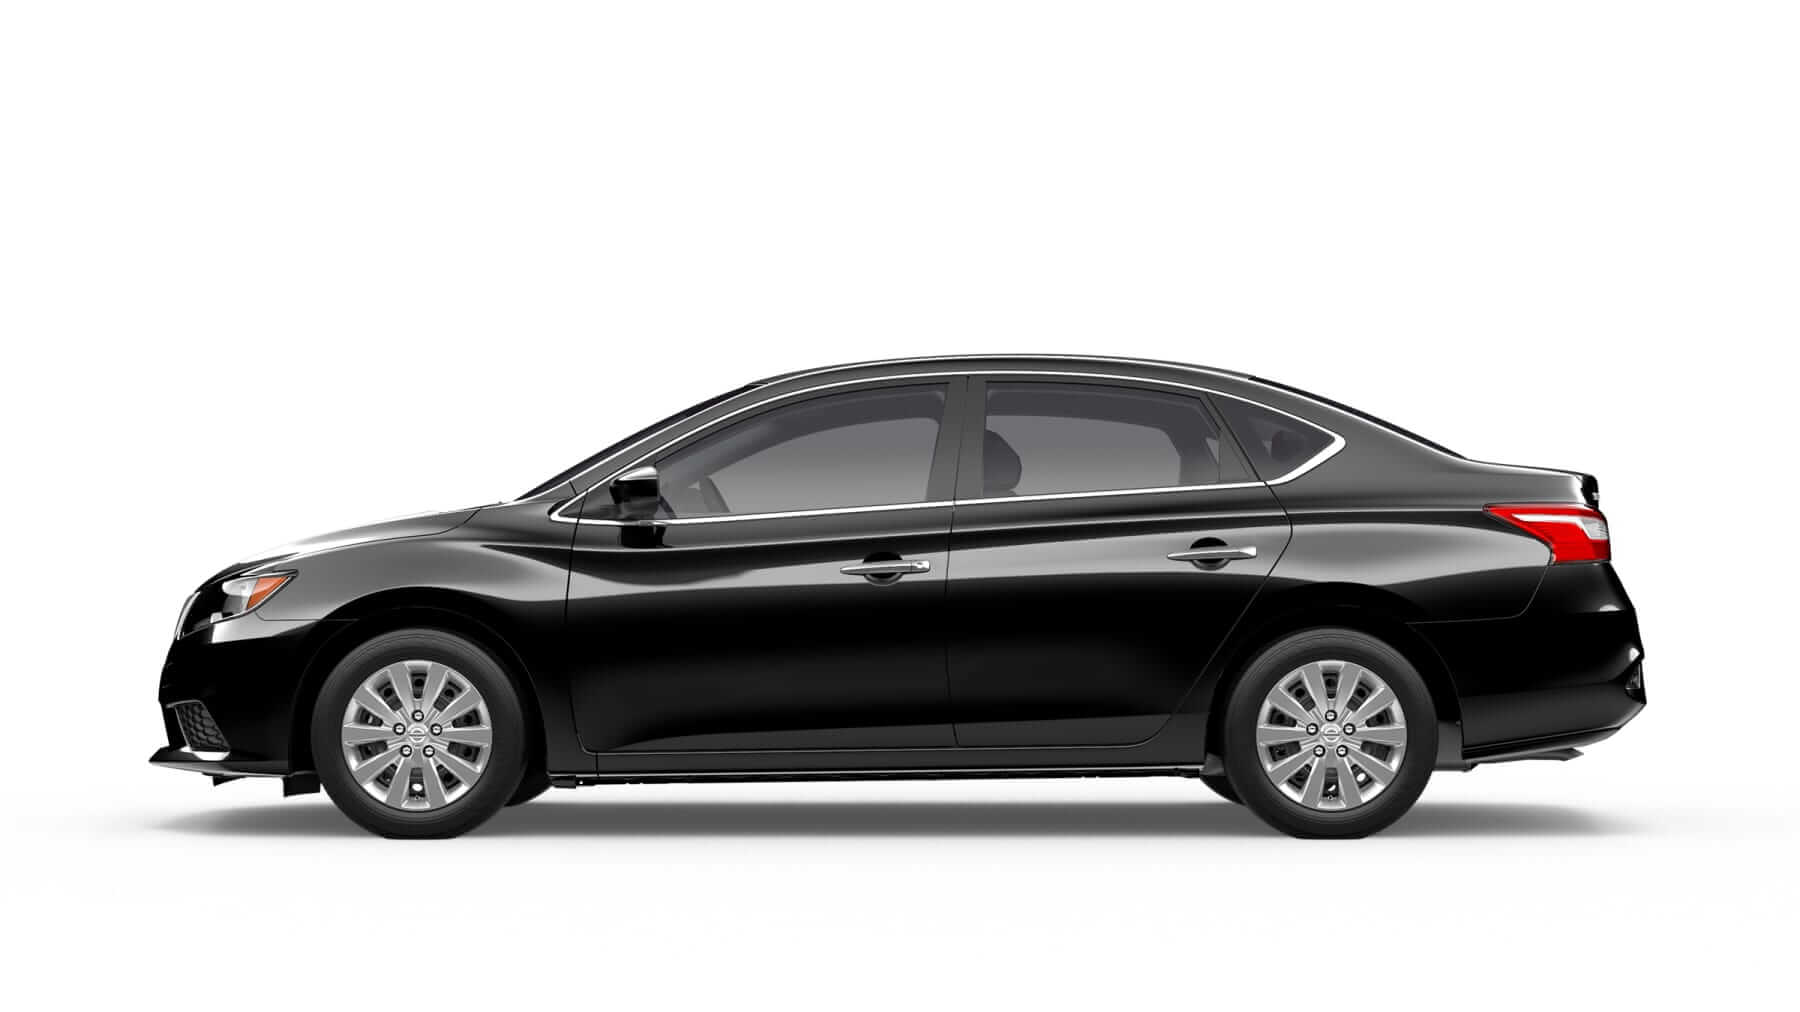 Mount Holly Nissan Sentra Nissan